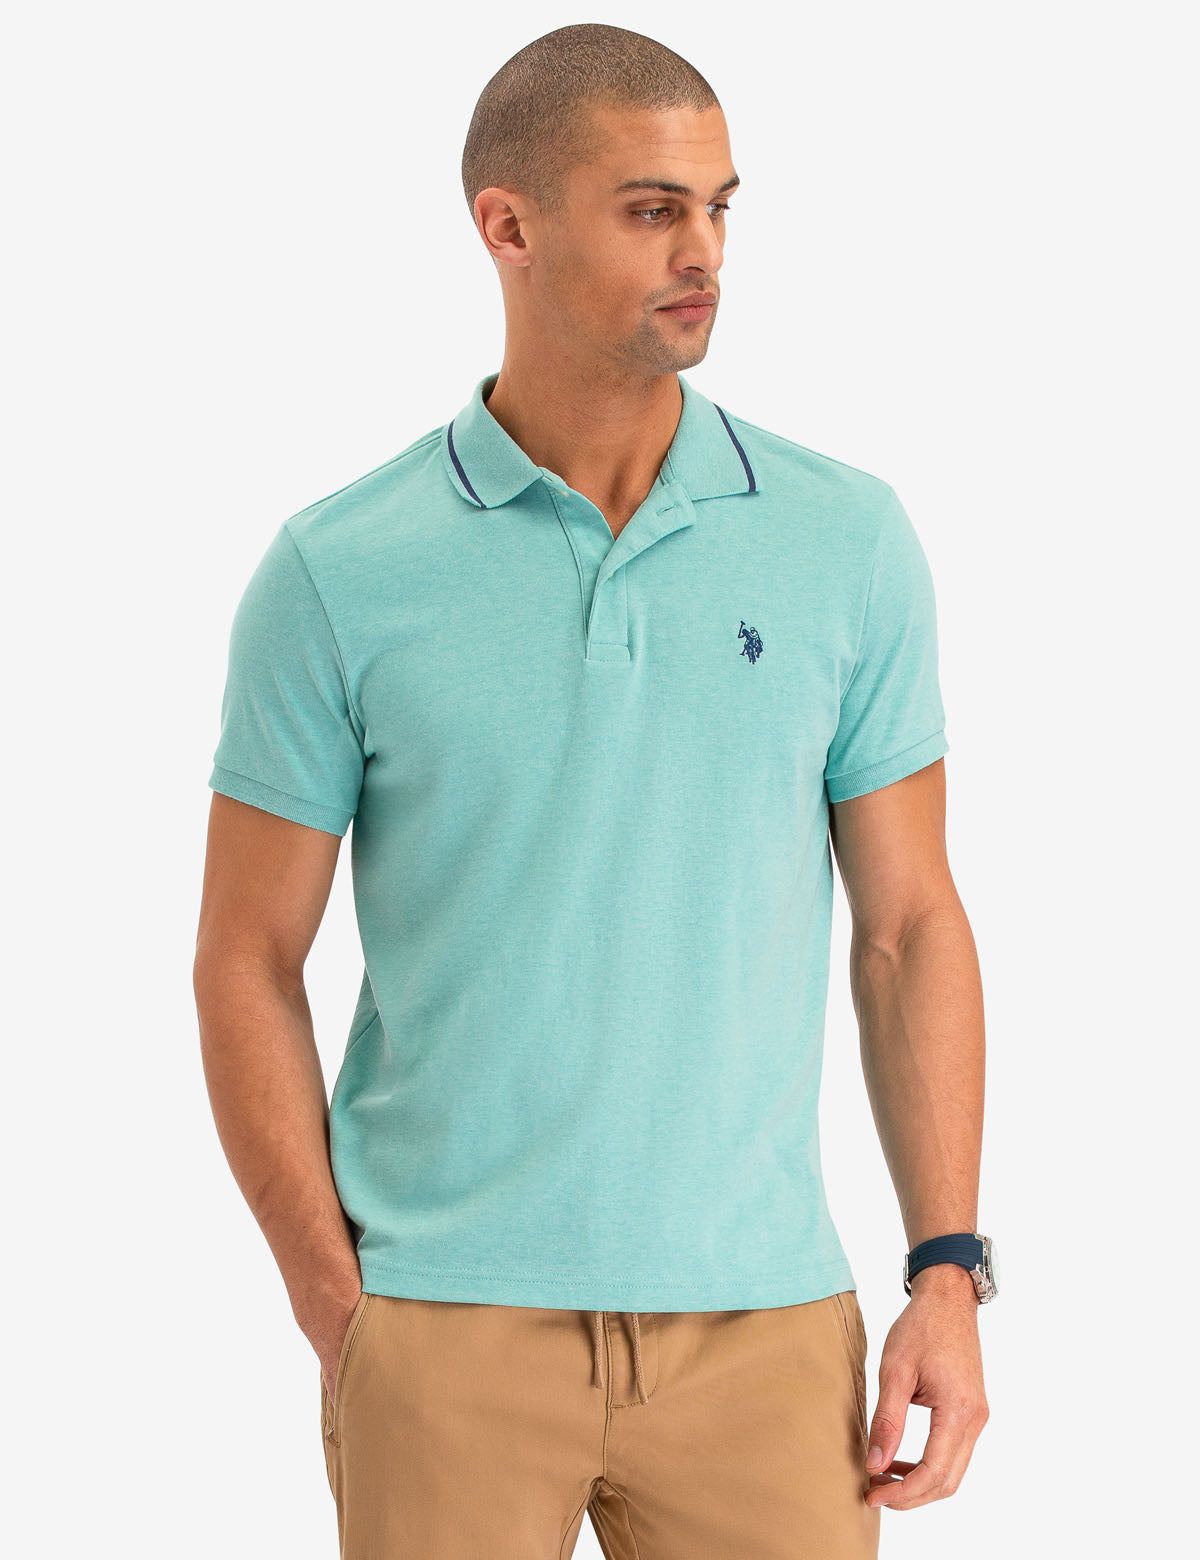 SLIM FIT TIPPED INTERLOCK POLO SHIRT